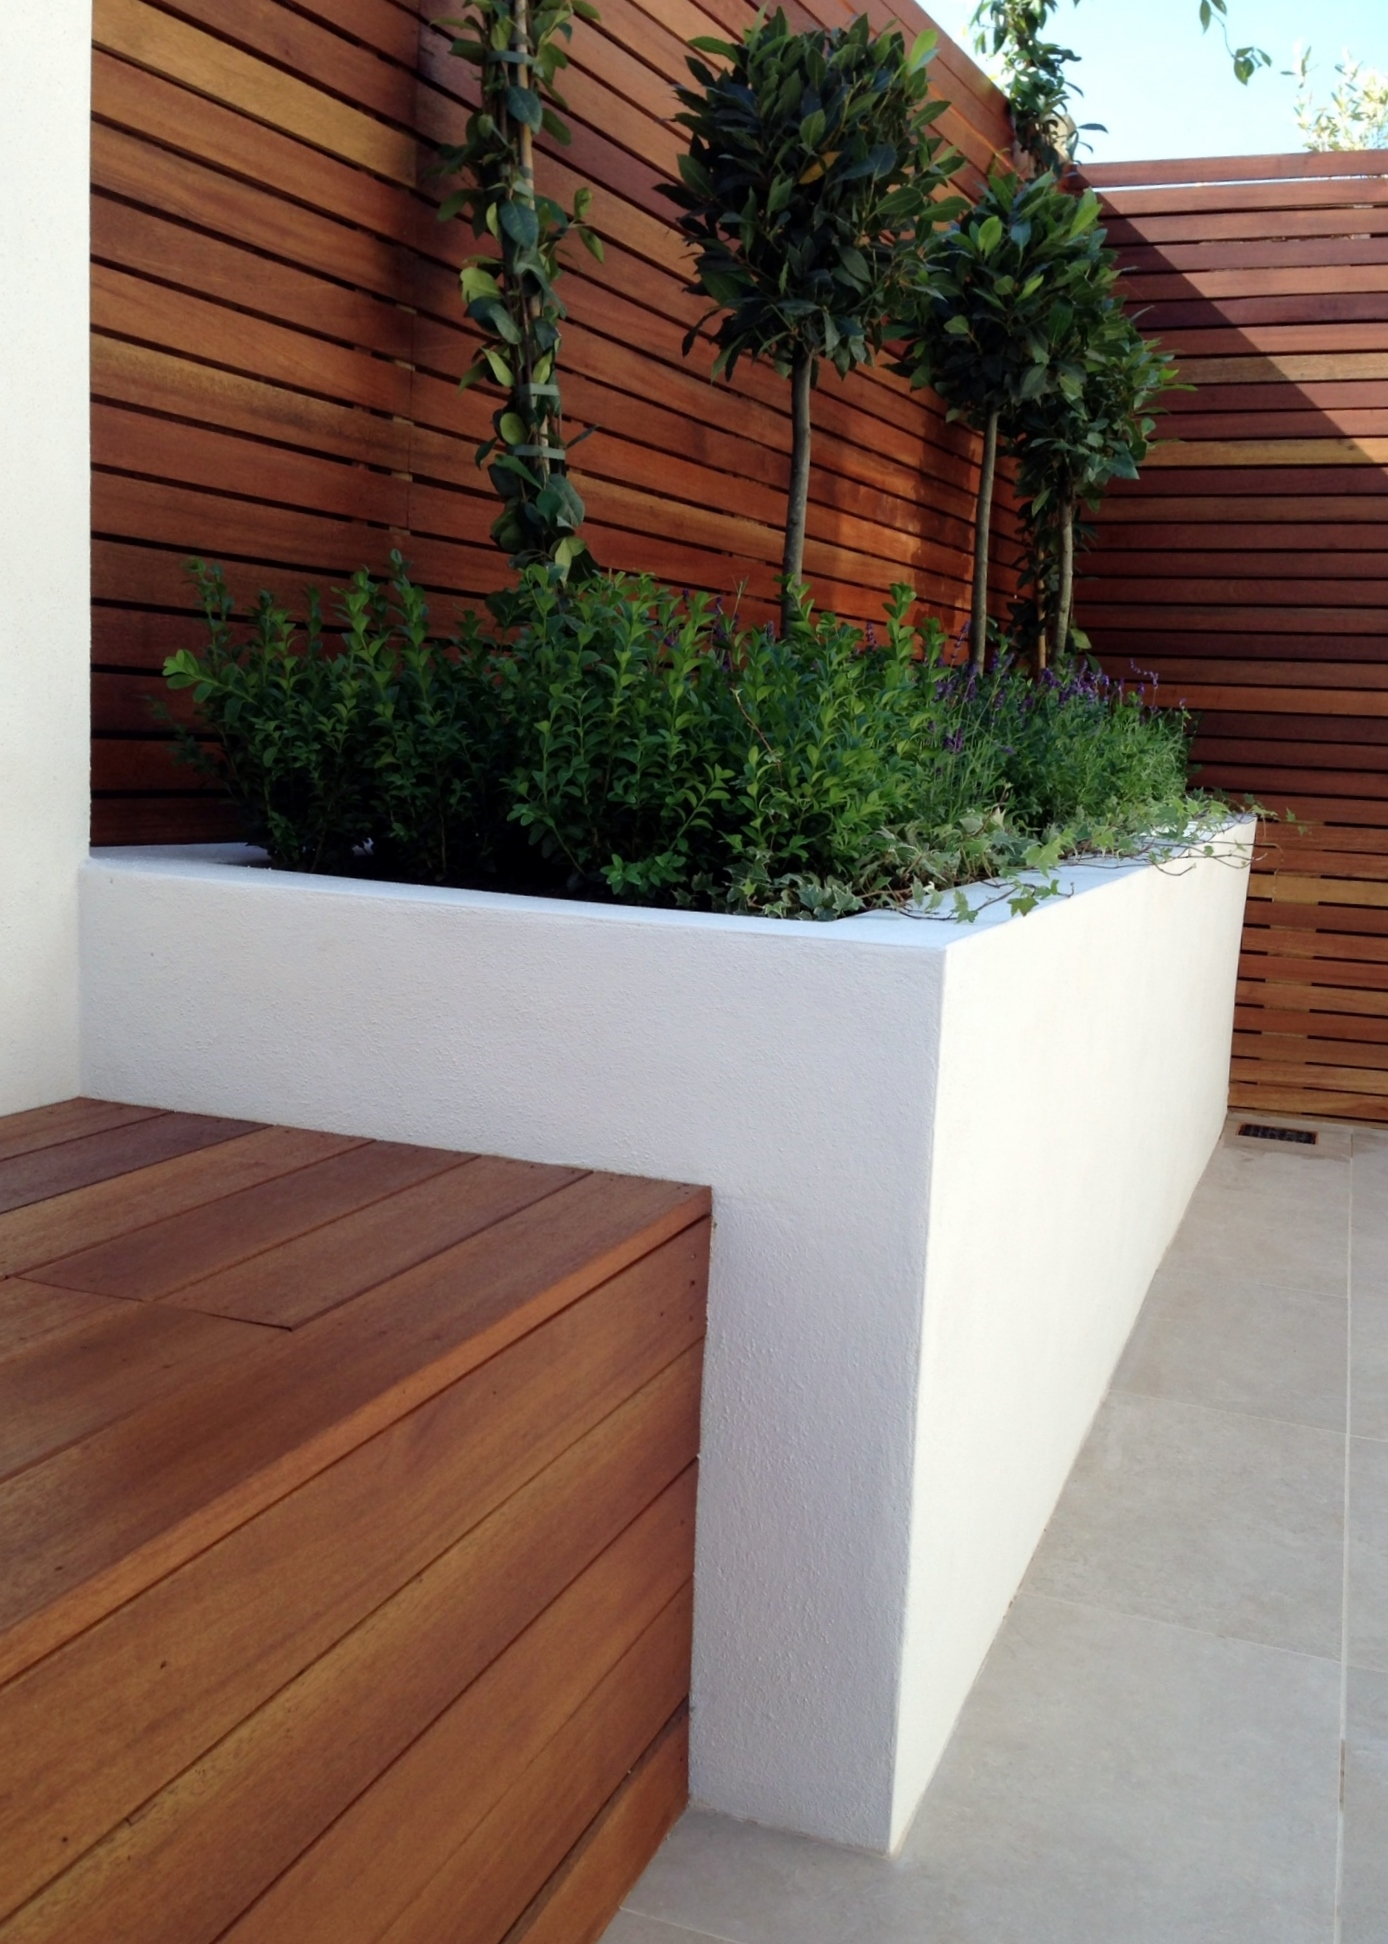 Small modern garden design london garden blog - Garden ideas london ...